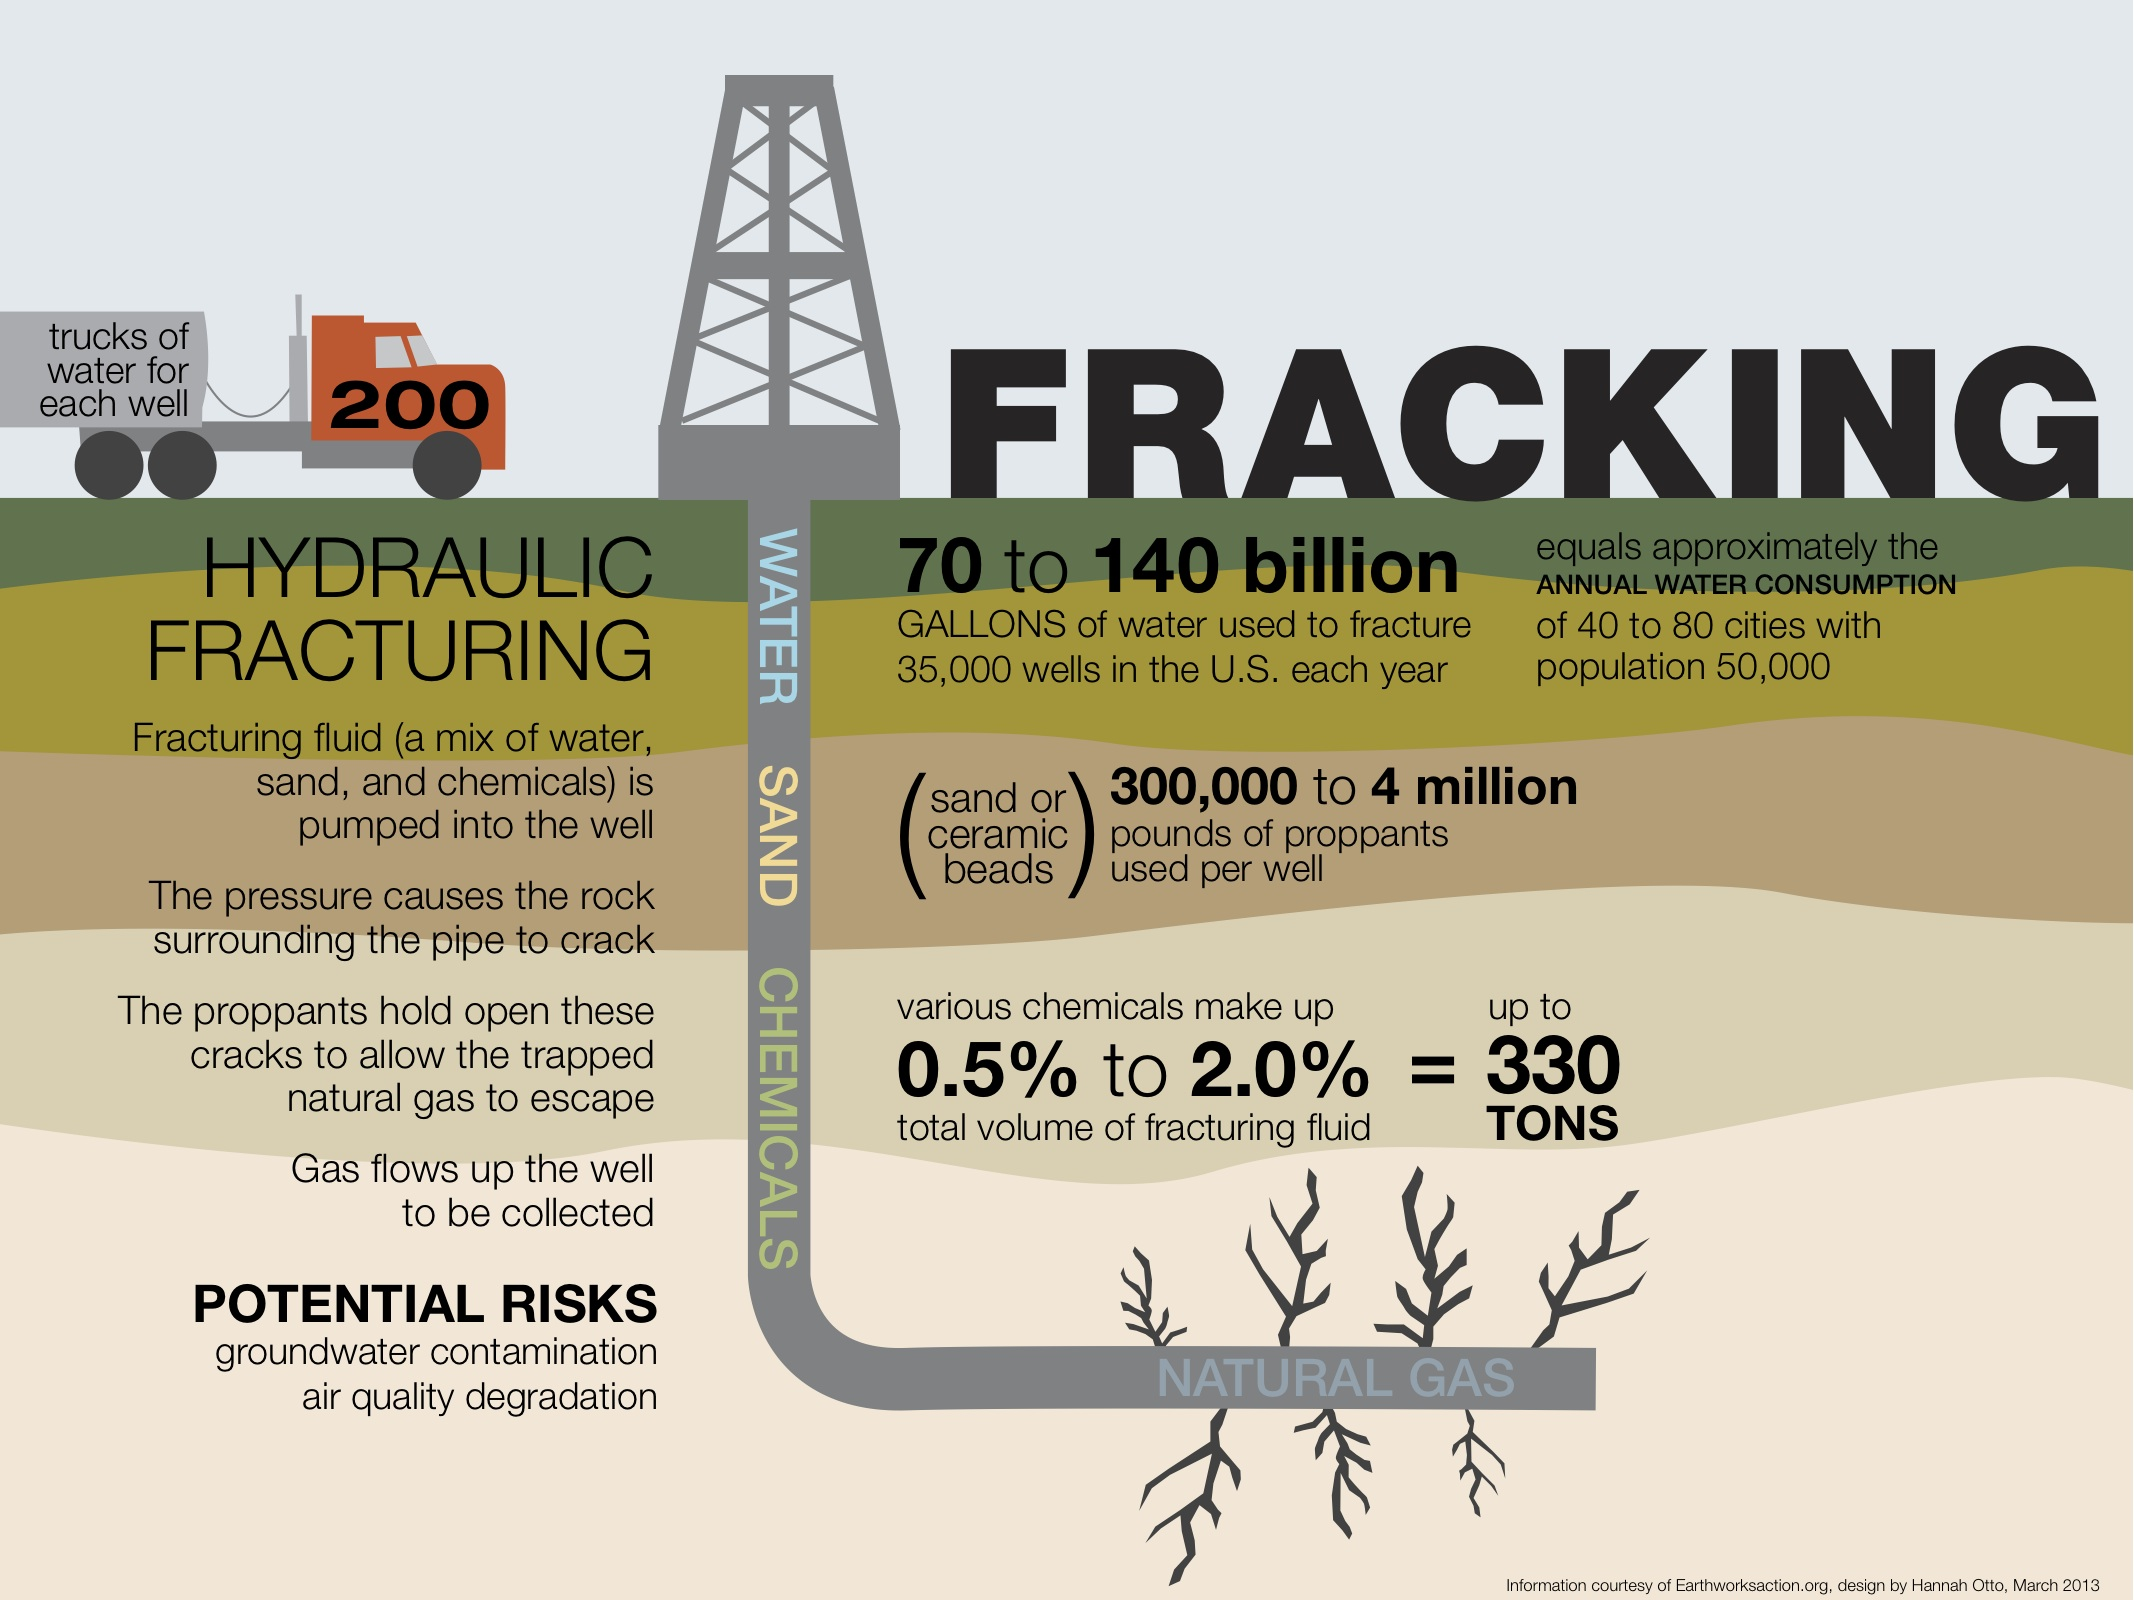 advantages of cause and effect diagram heat trace wiring fracking is lacking so people are reacting sociology